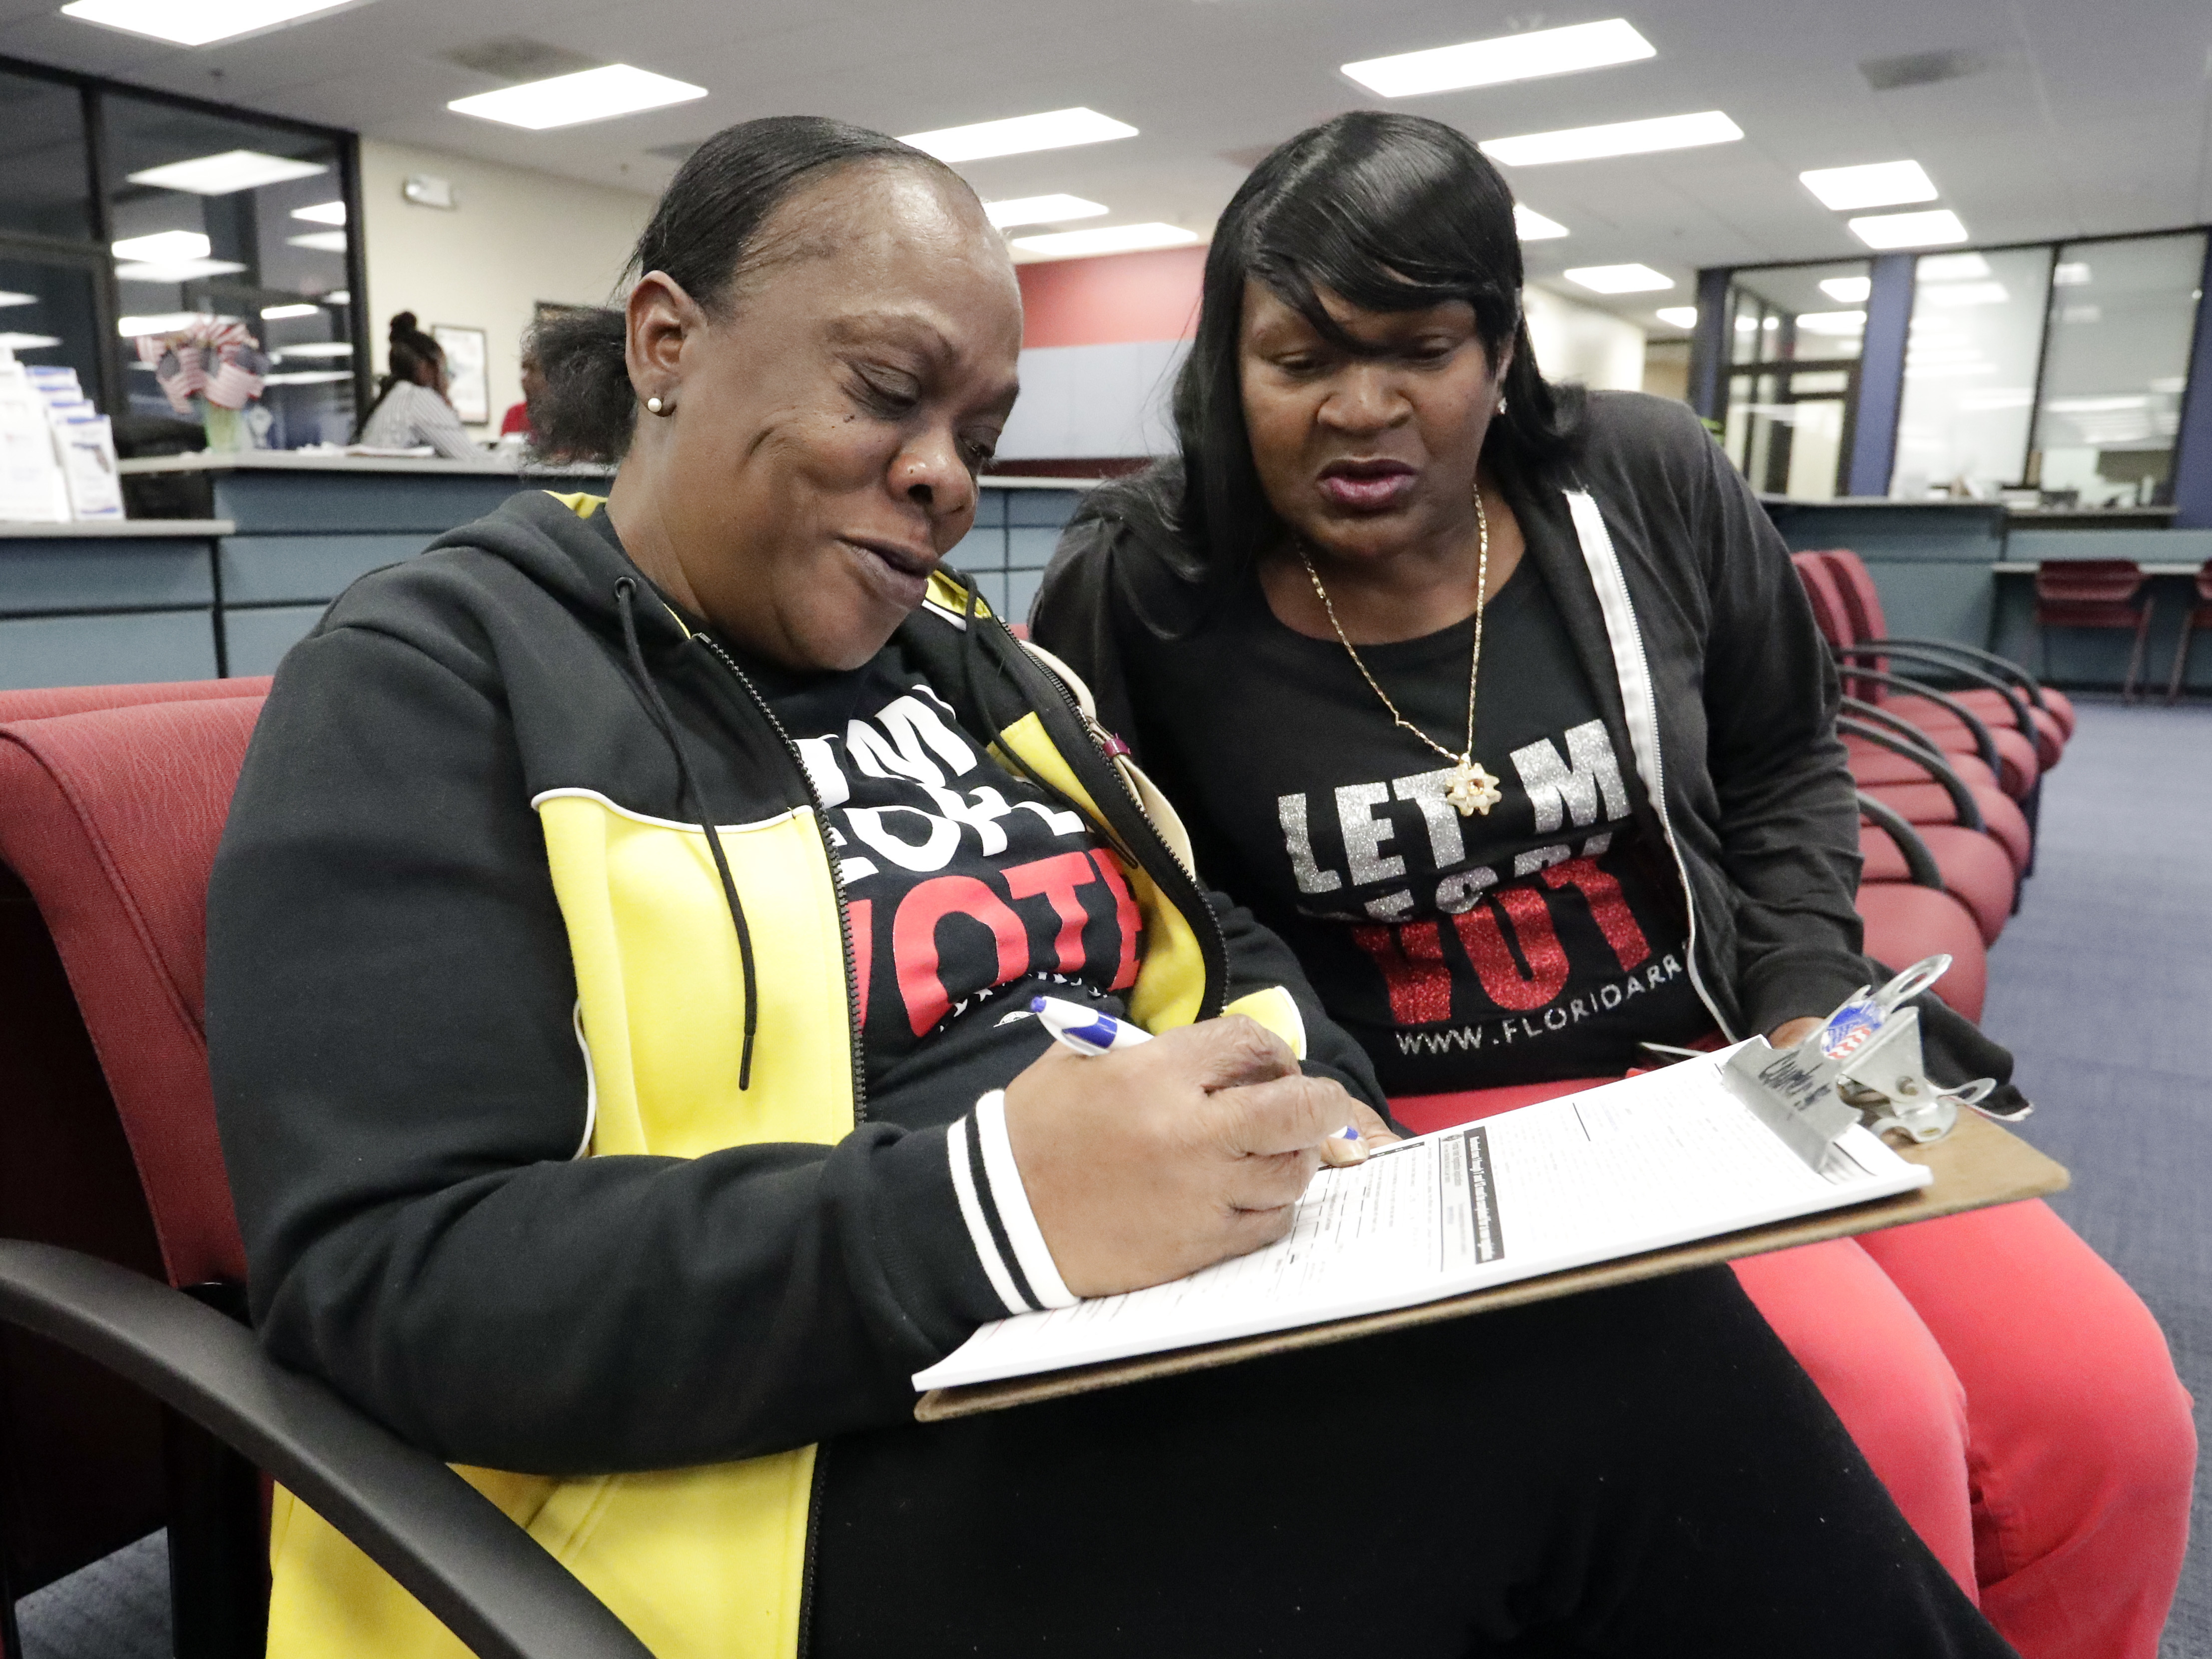 Former felon Yolanda Wilcox, left, fills out a voter registration form as her best friend Gale Buswell looks on at the Supervisor of Elections office Tuesday, Jan. 8, 2019, in Orlando, Fla.